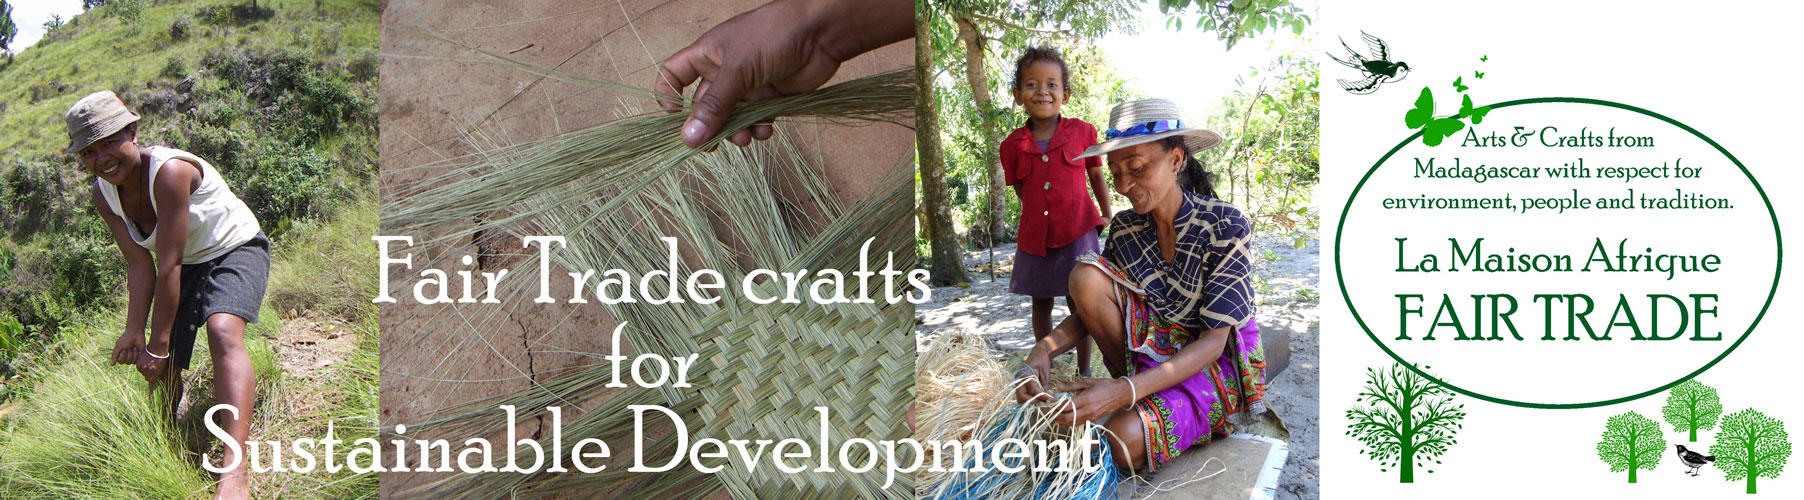 Fairtrade crafts for Sustainable Development